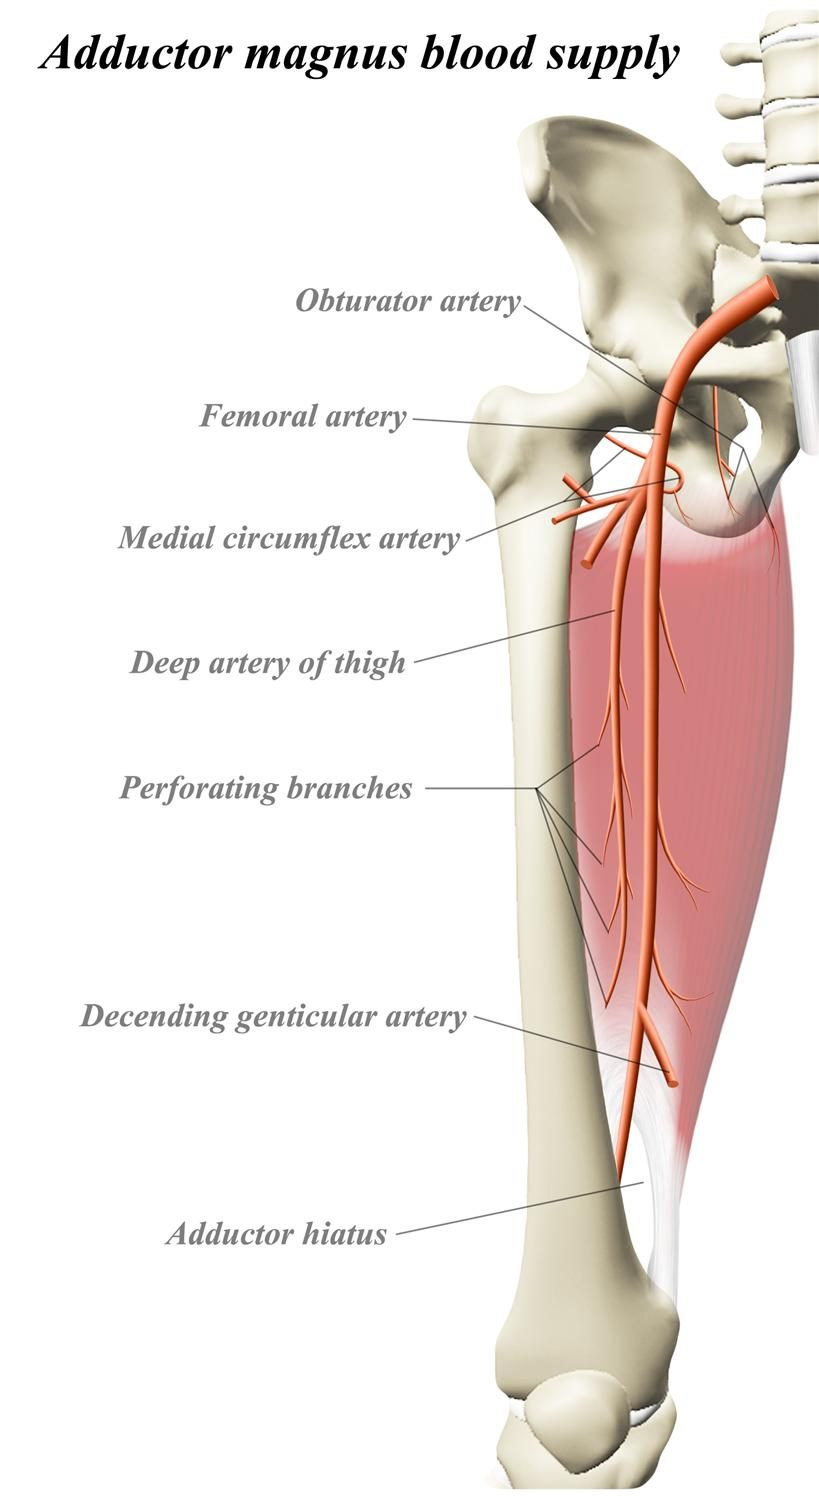 Adductor Magnus Anatomy Orthobullets